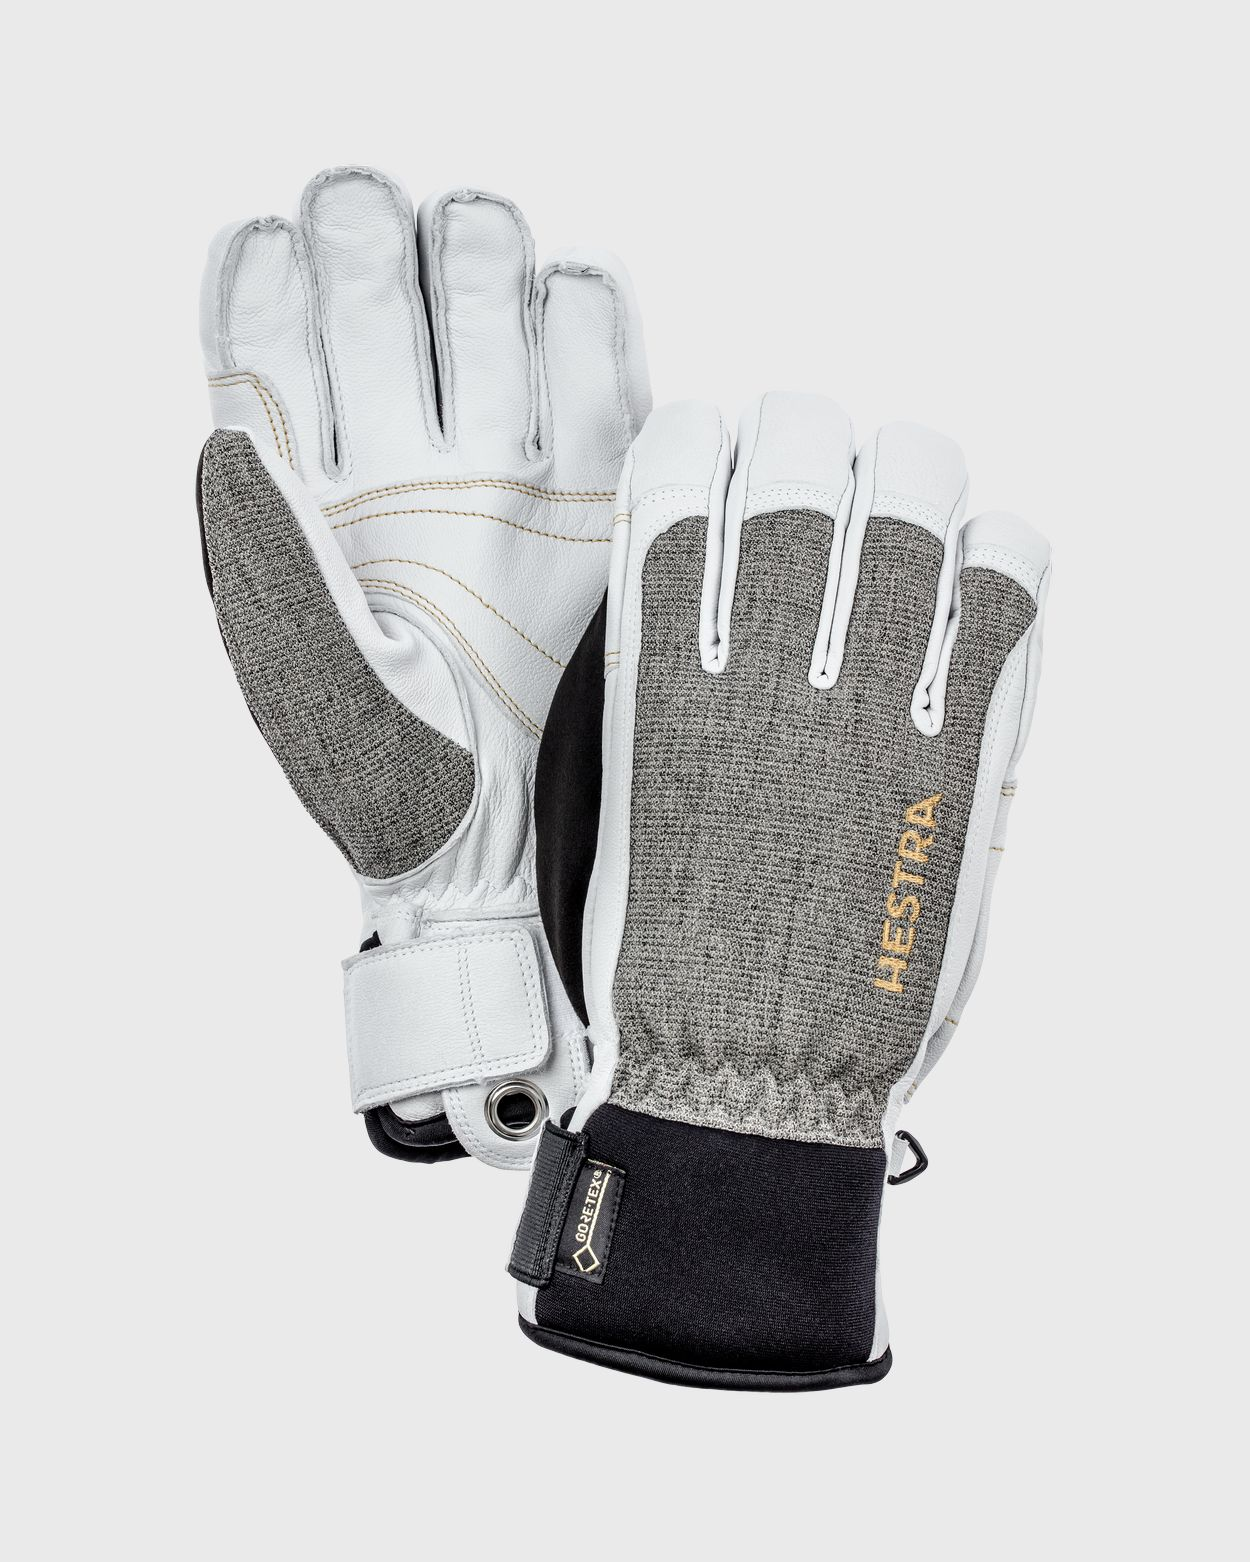 Army Leather Short Gore-Tex Glove Gloves Hestra Grey/White 7 - S